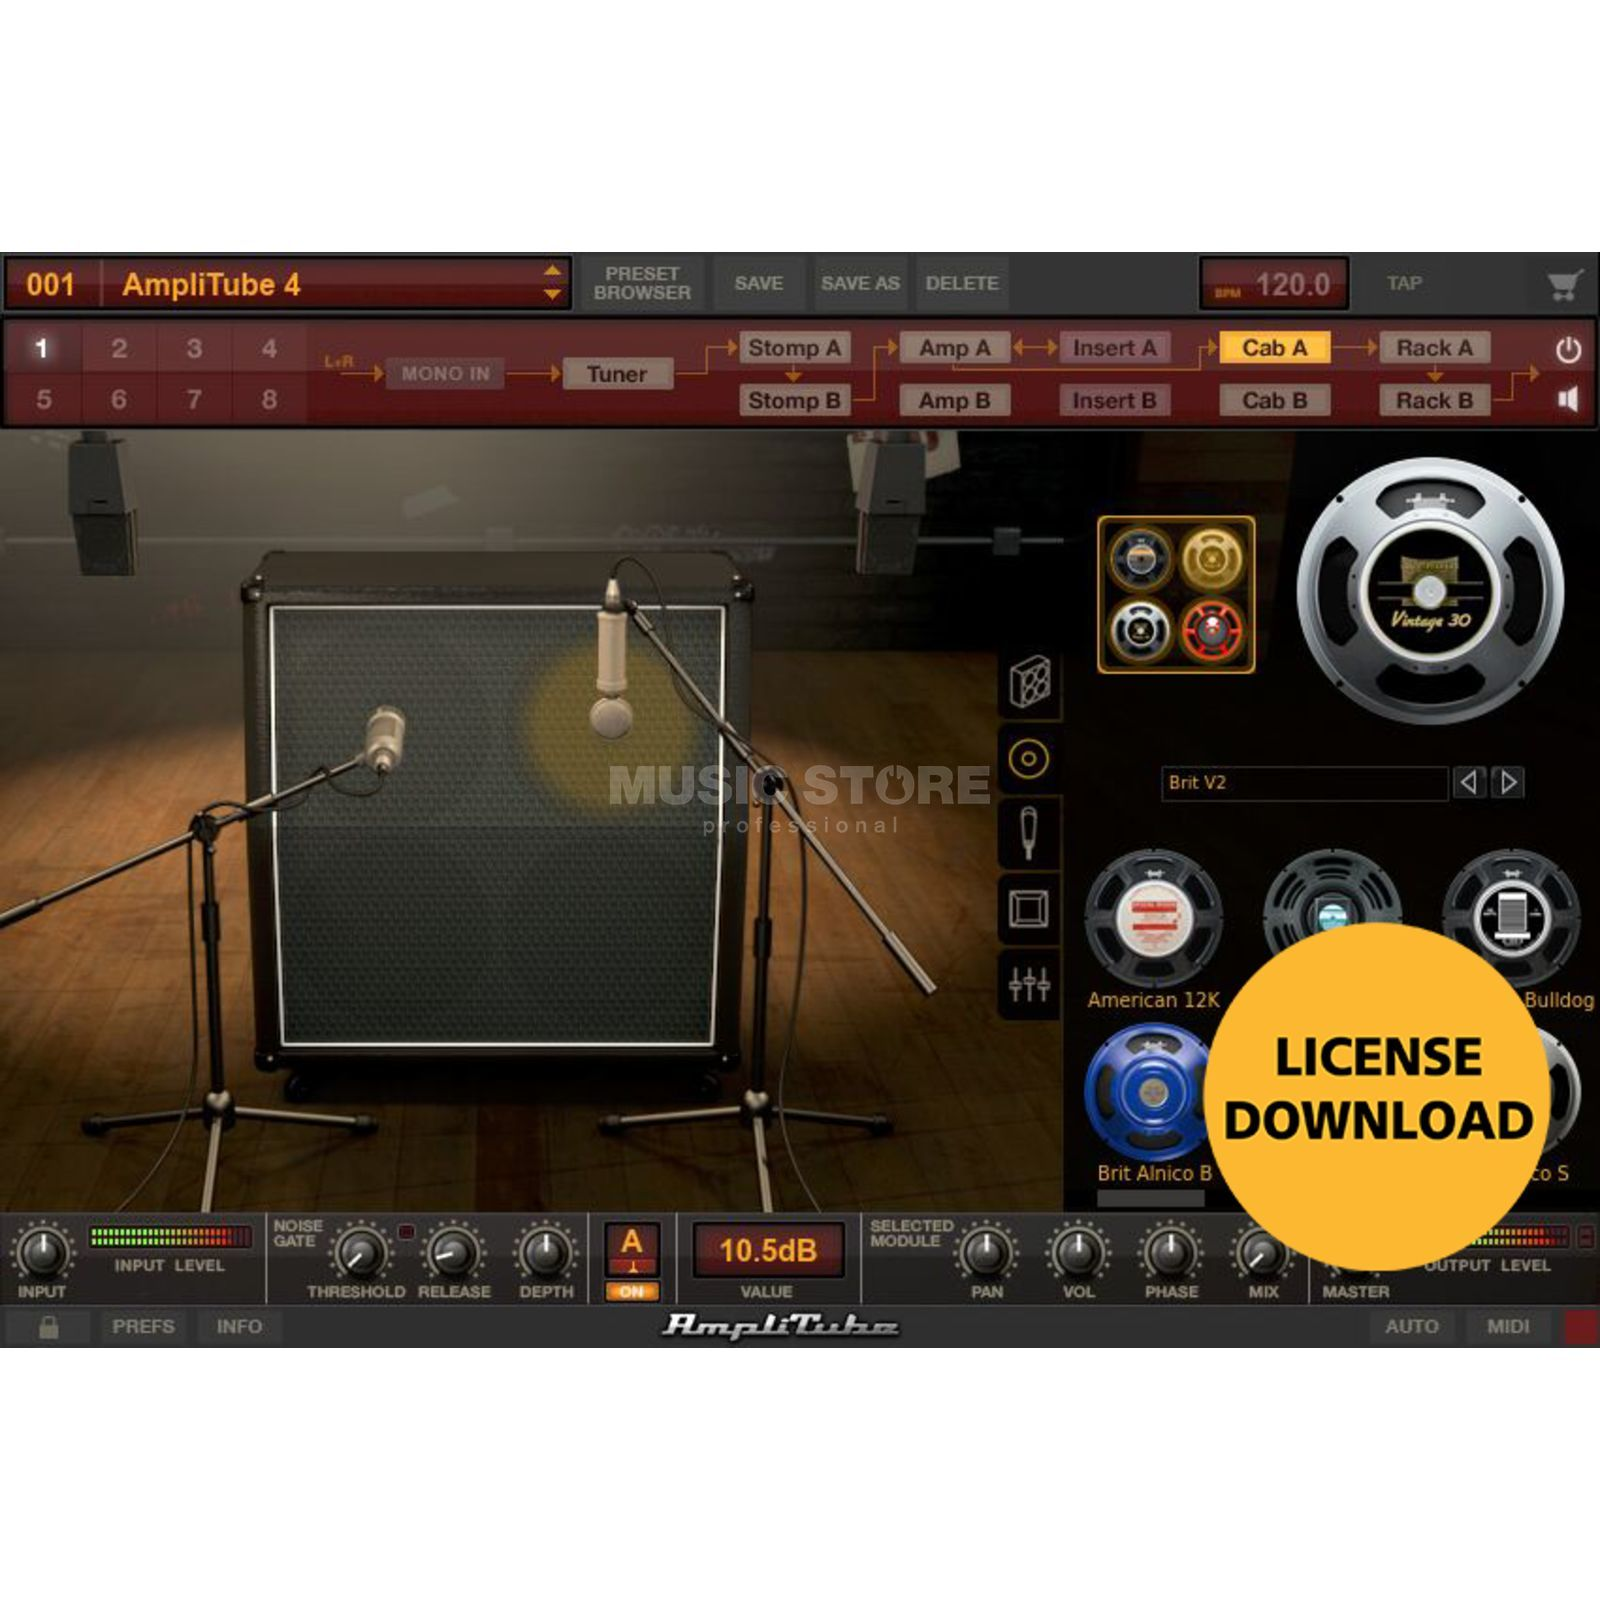 IK Multimedia Amplitube 4 License Code Produktbild